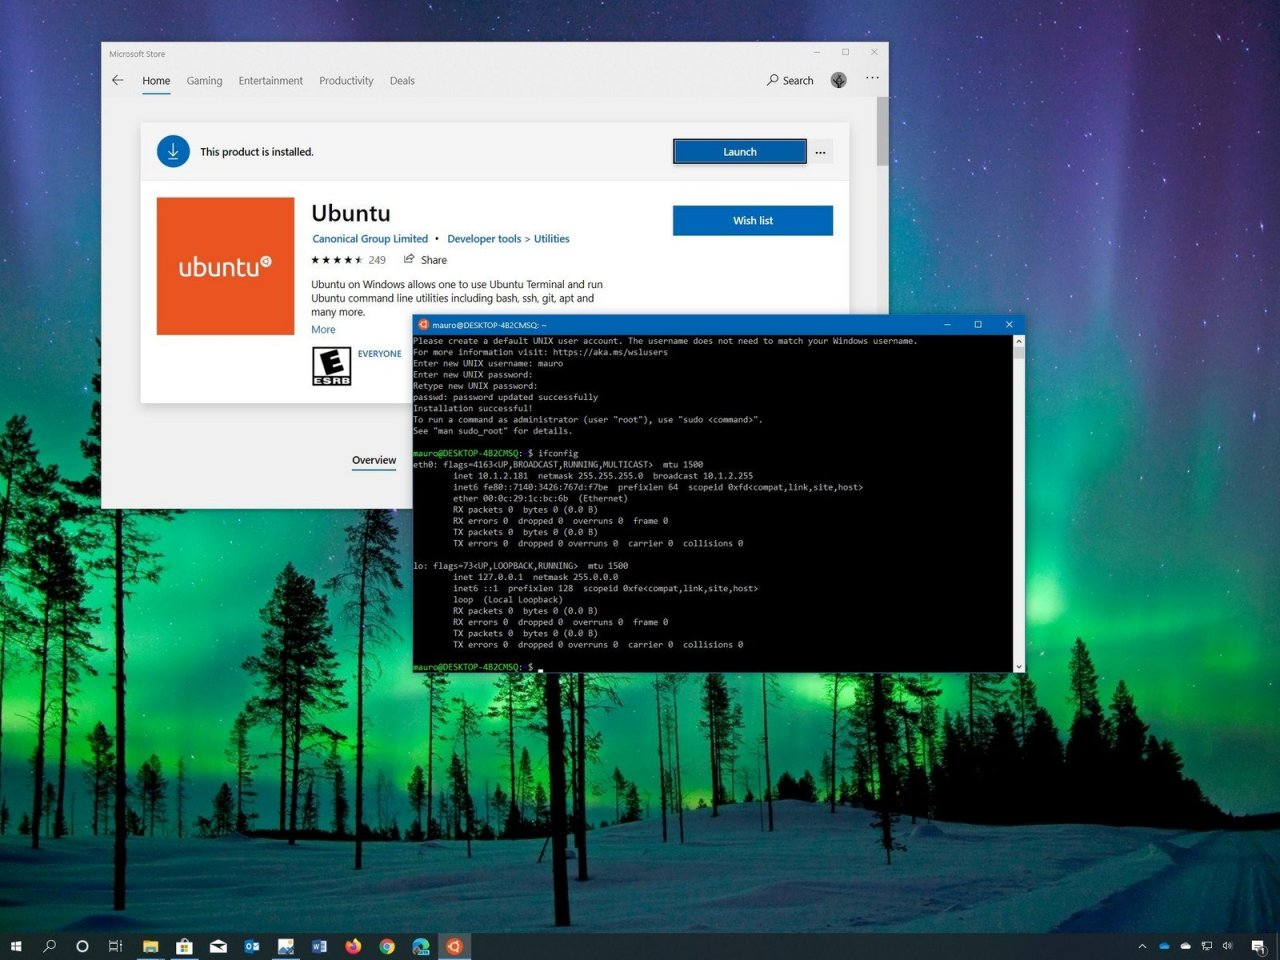 Windows Subsystem for Linux 2 (WSL 2) теперь доступен для Windows 10 версий 1903 и 1909